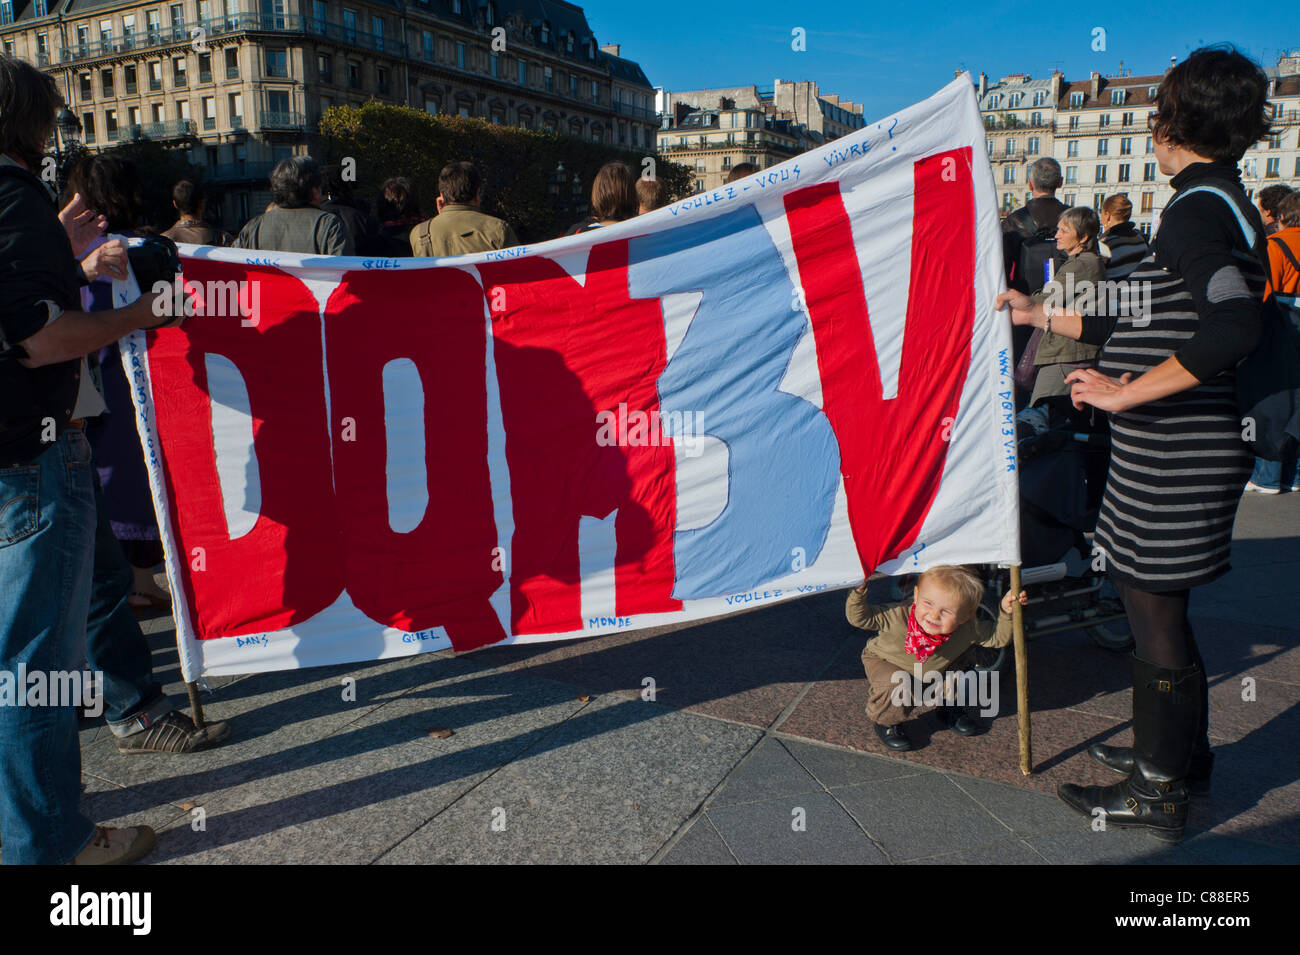 Paris, France,. French Family protesting, Holding Sign, Indignados (Indignant) movement Demonstration, International - Stock Image